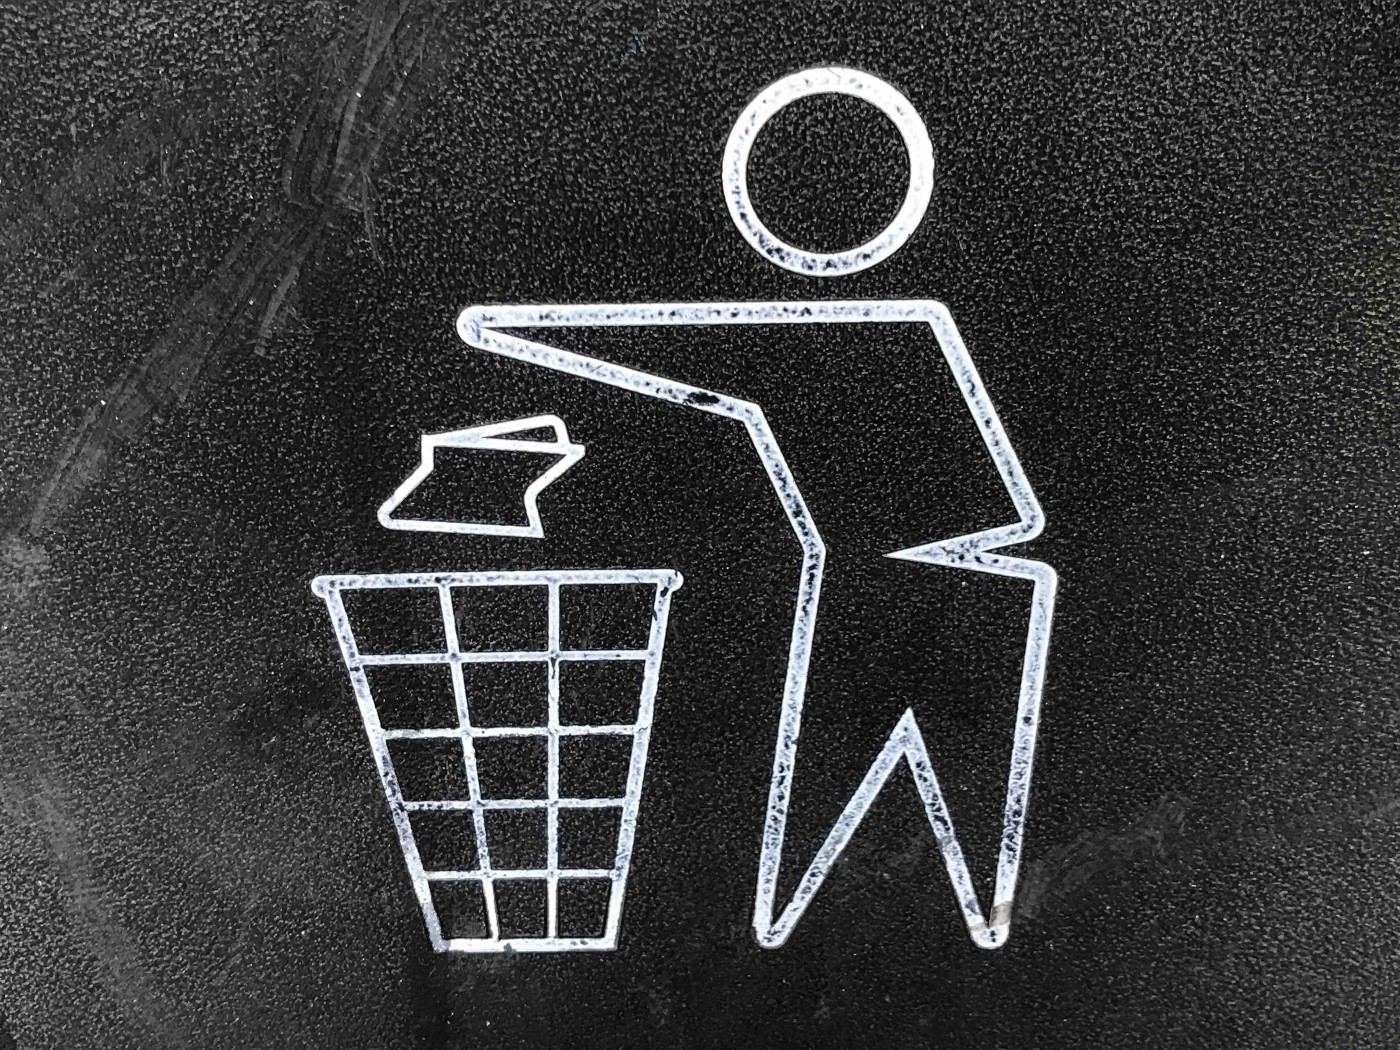 A stick figure throws a piece of litter in a trash bin. Jim's Shorts on Substack.